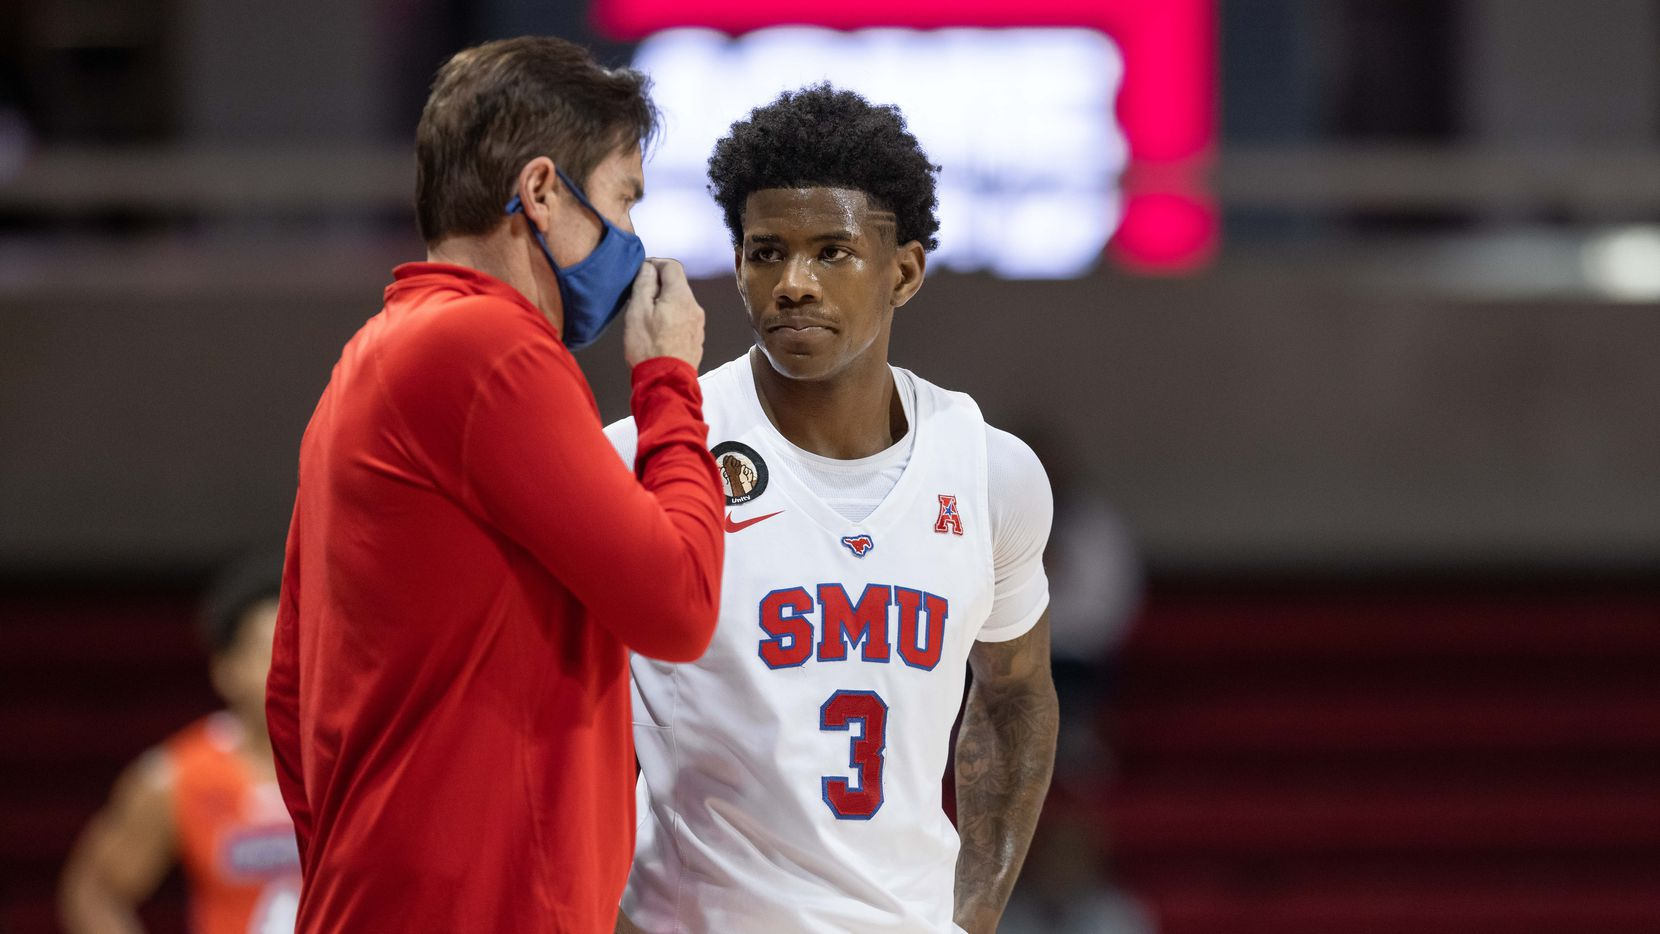 DALLAS, TX - DECEMBER 02: SMU Mustangs guard Kendric Davis (#3) talks to SMU Mustangs head coach Tim Jankovich during the college basketball game between the SMU Mustangs and the Houston Baptist Huskies on December 02, 2020, at Moody Coliseum in Dallas, TX.  (Photo by Matthew Visinsky/Icon Sportswire via Getty Images)